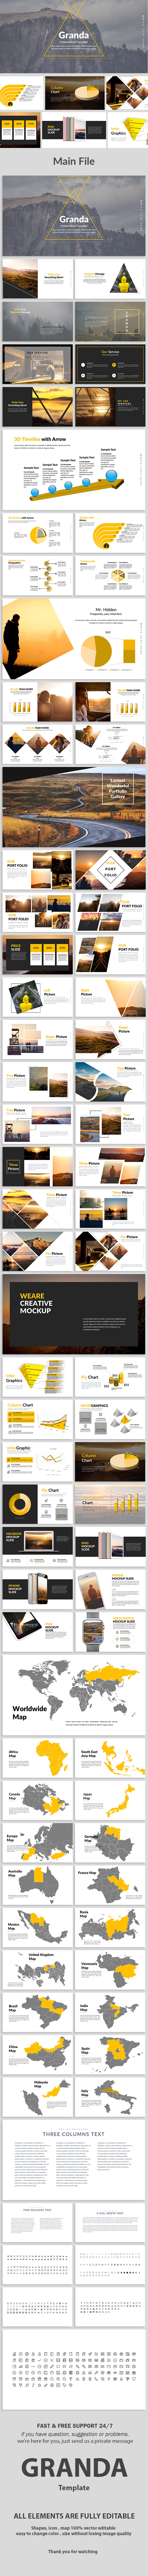 Granda - Creative PowerPoint Template - Creative PowerPoint Templates